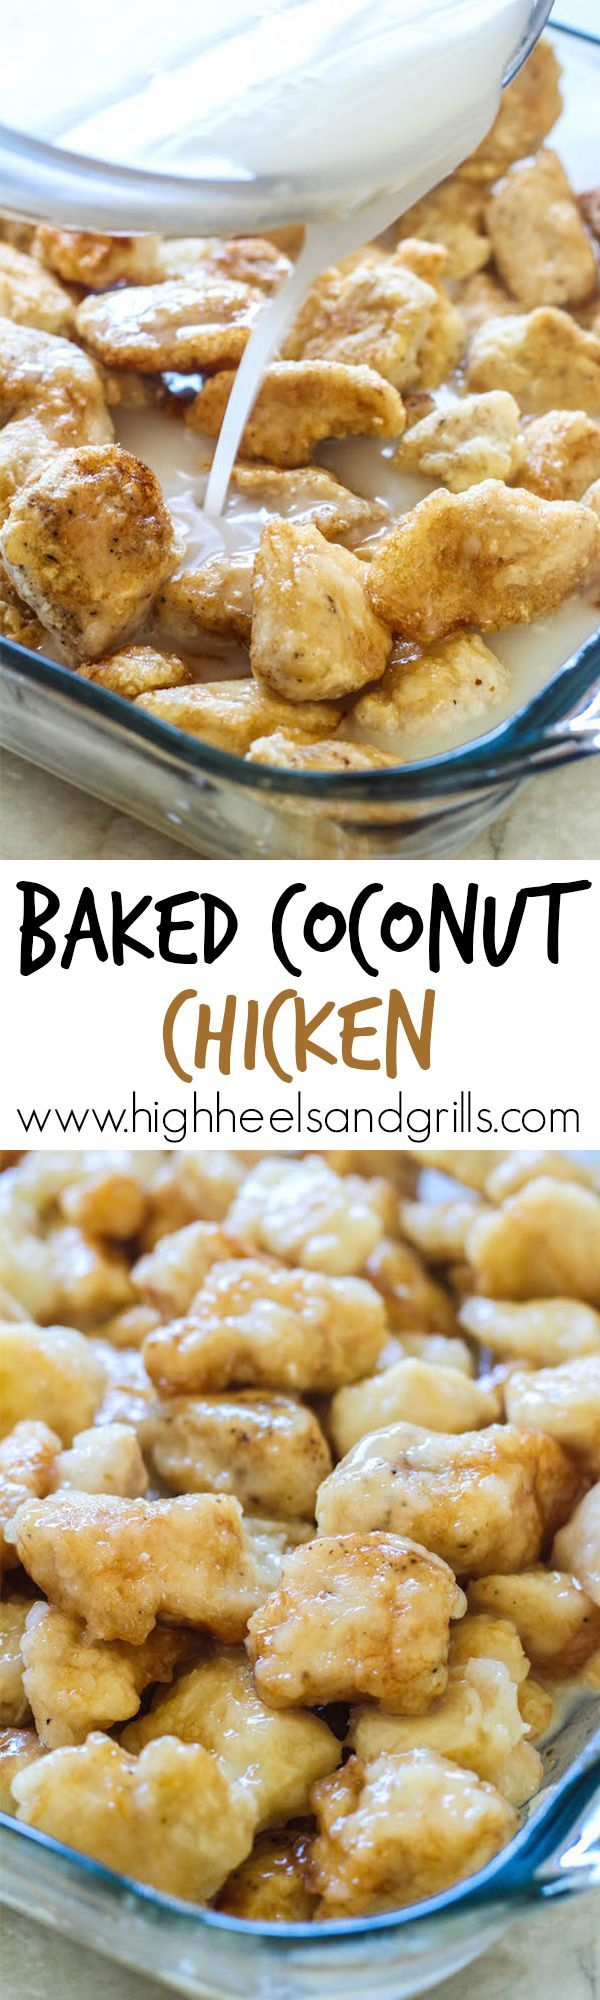 Baked Coconut Chicken #chickenbreastrecipeseasy